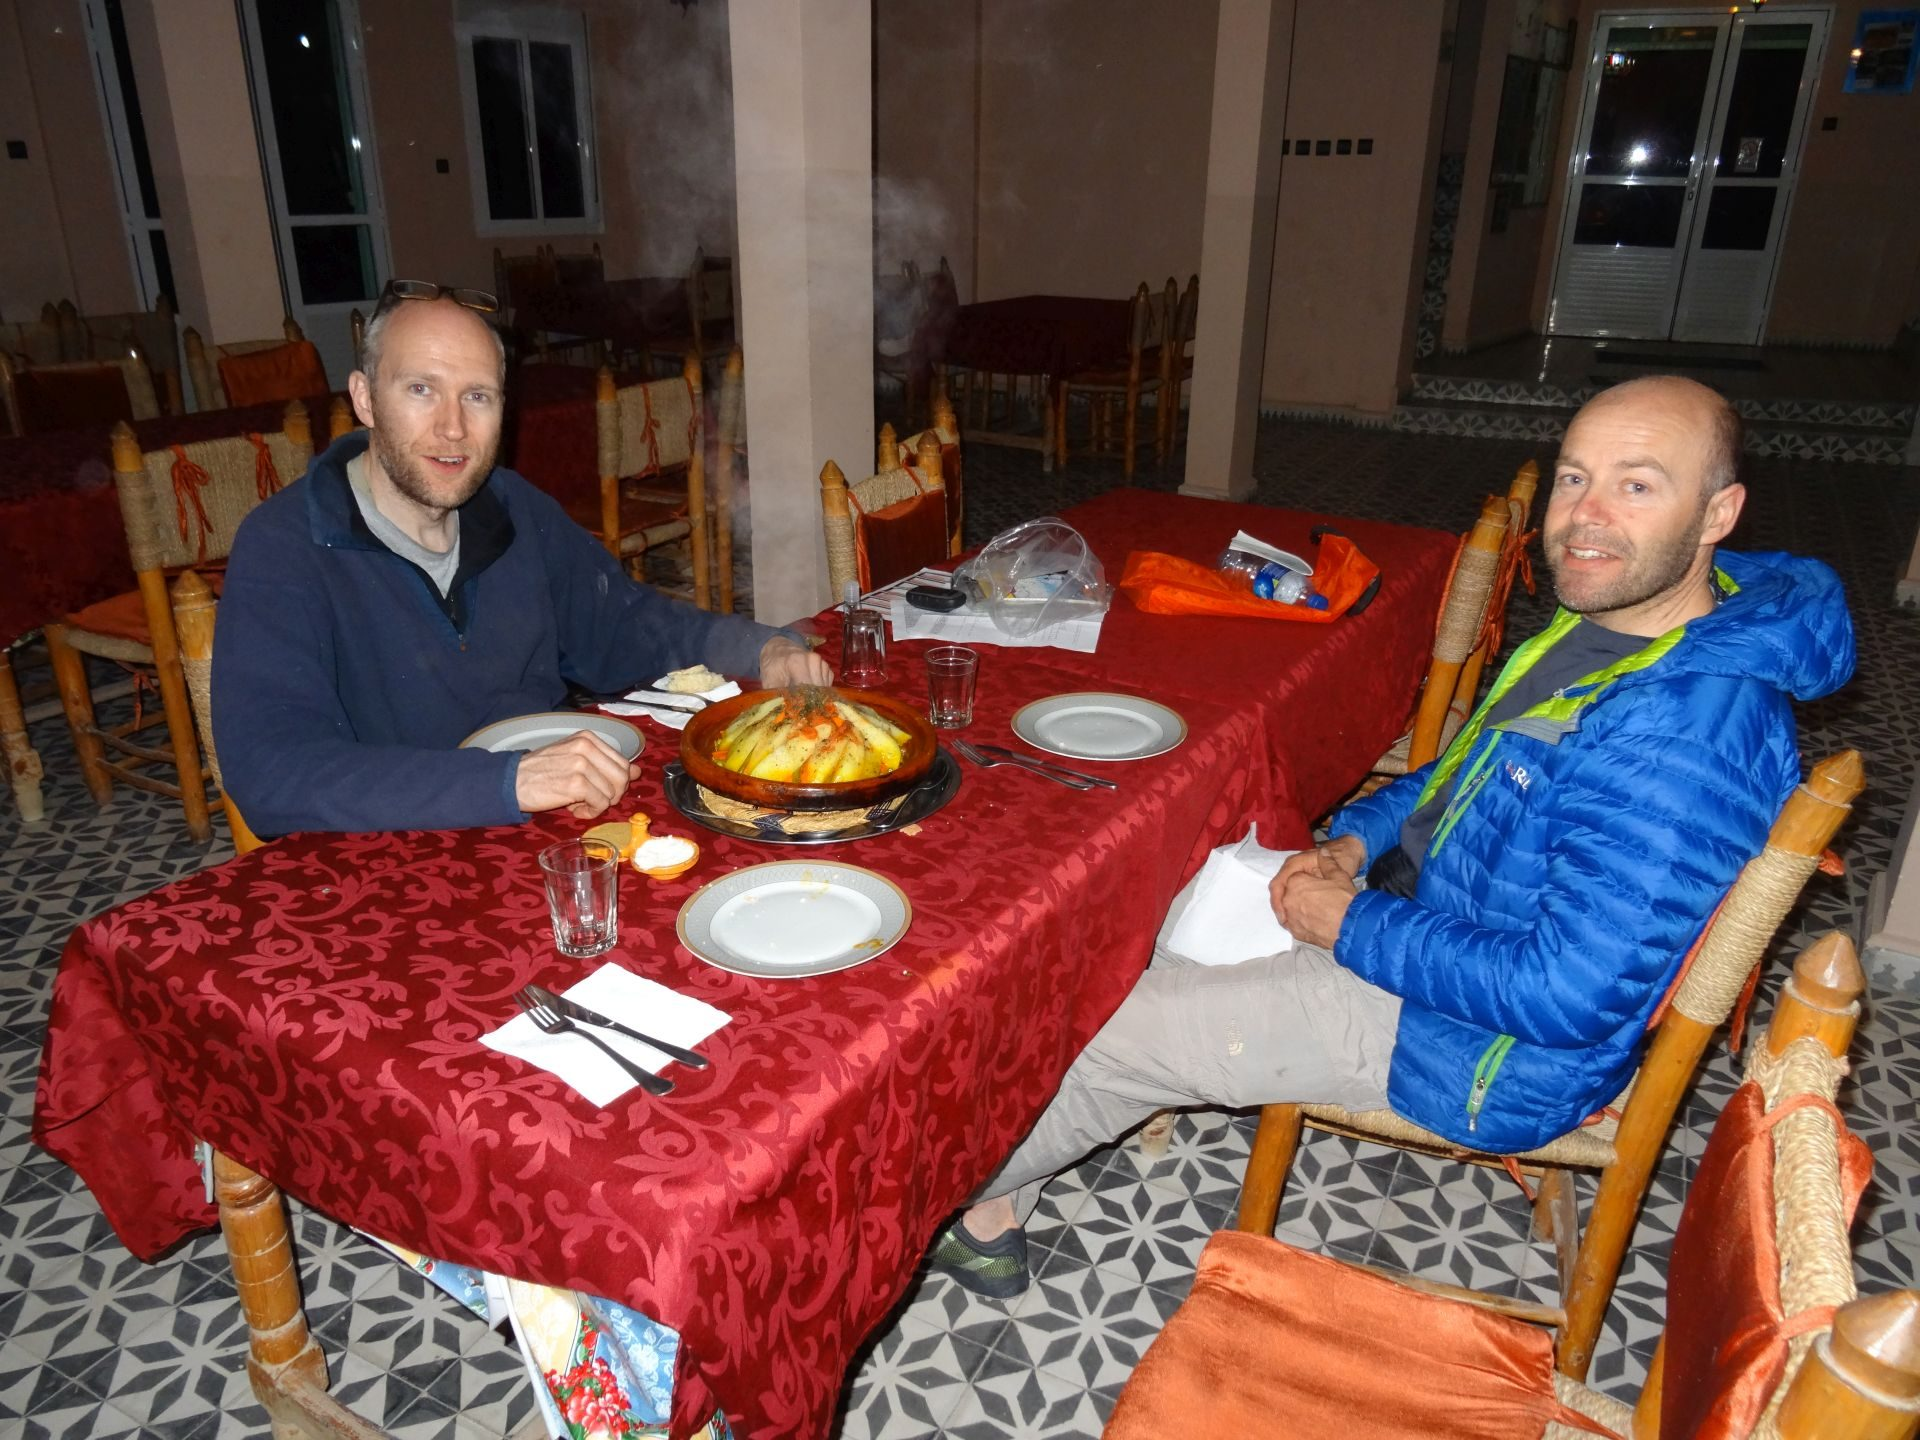 Transfer Day A  - Hungry boys Jon (left) & Shaun (right) ready themselves to inhale Tagine dinner before Steve puts camera down ... Hotel Izlane, Imilchil. © Steve Woodward